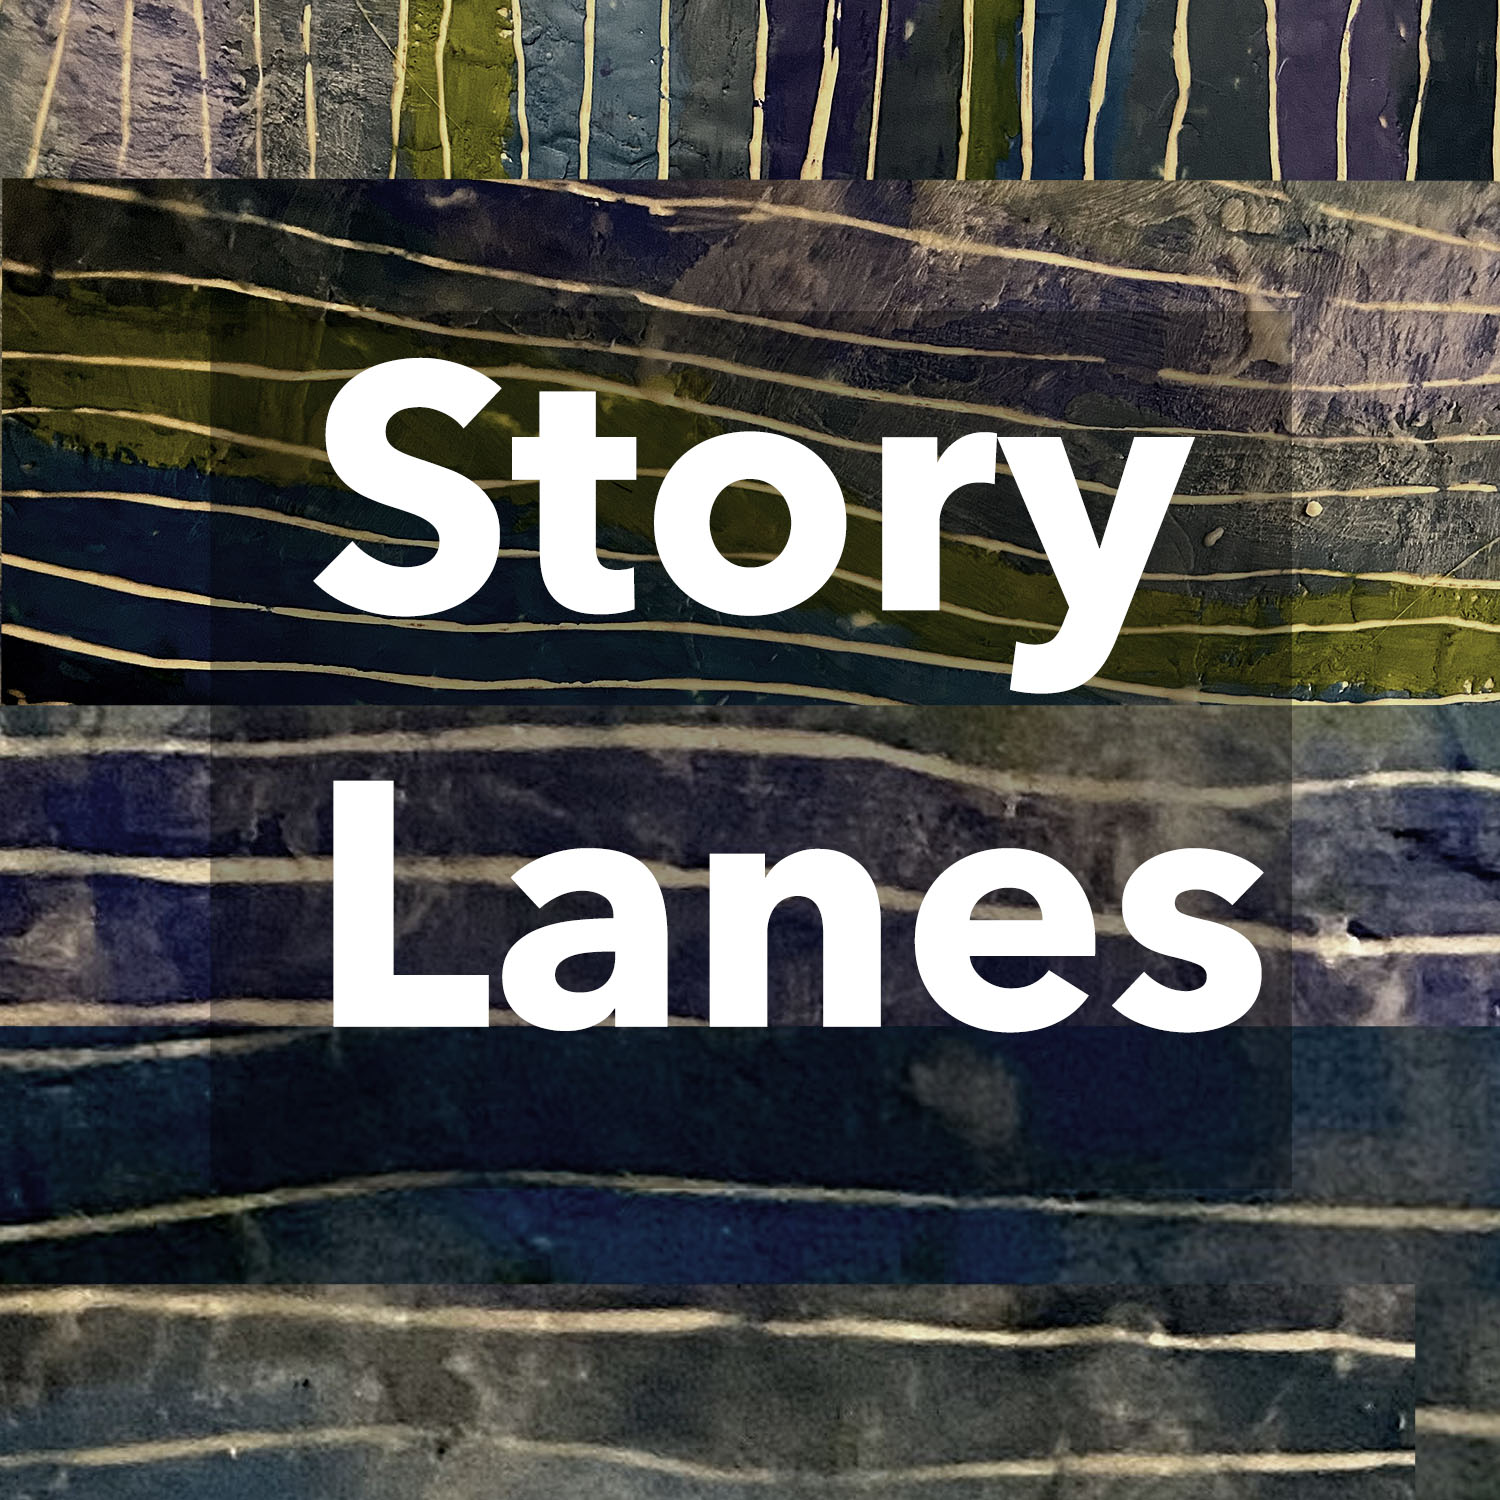 About the Storylanes Podcast